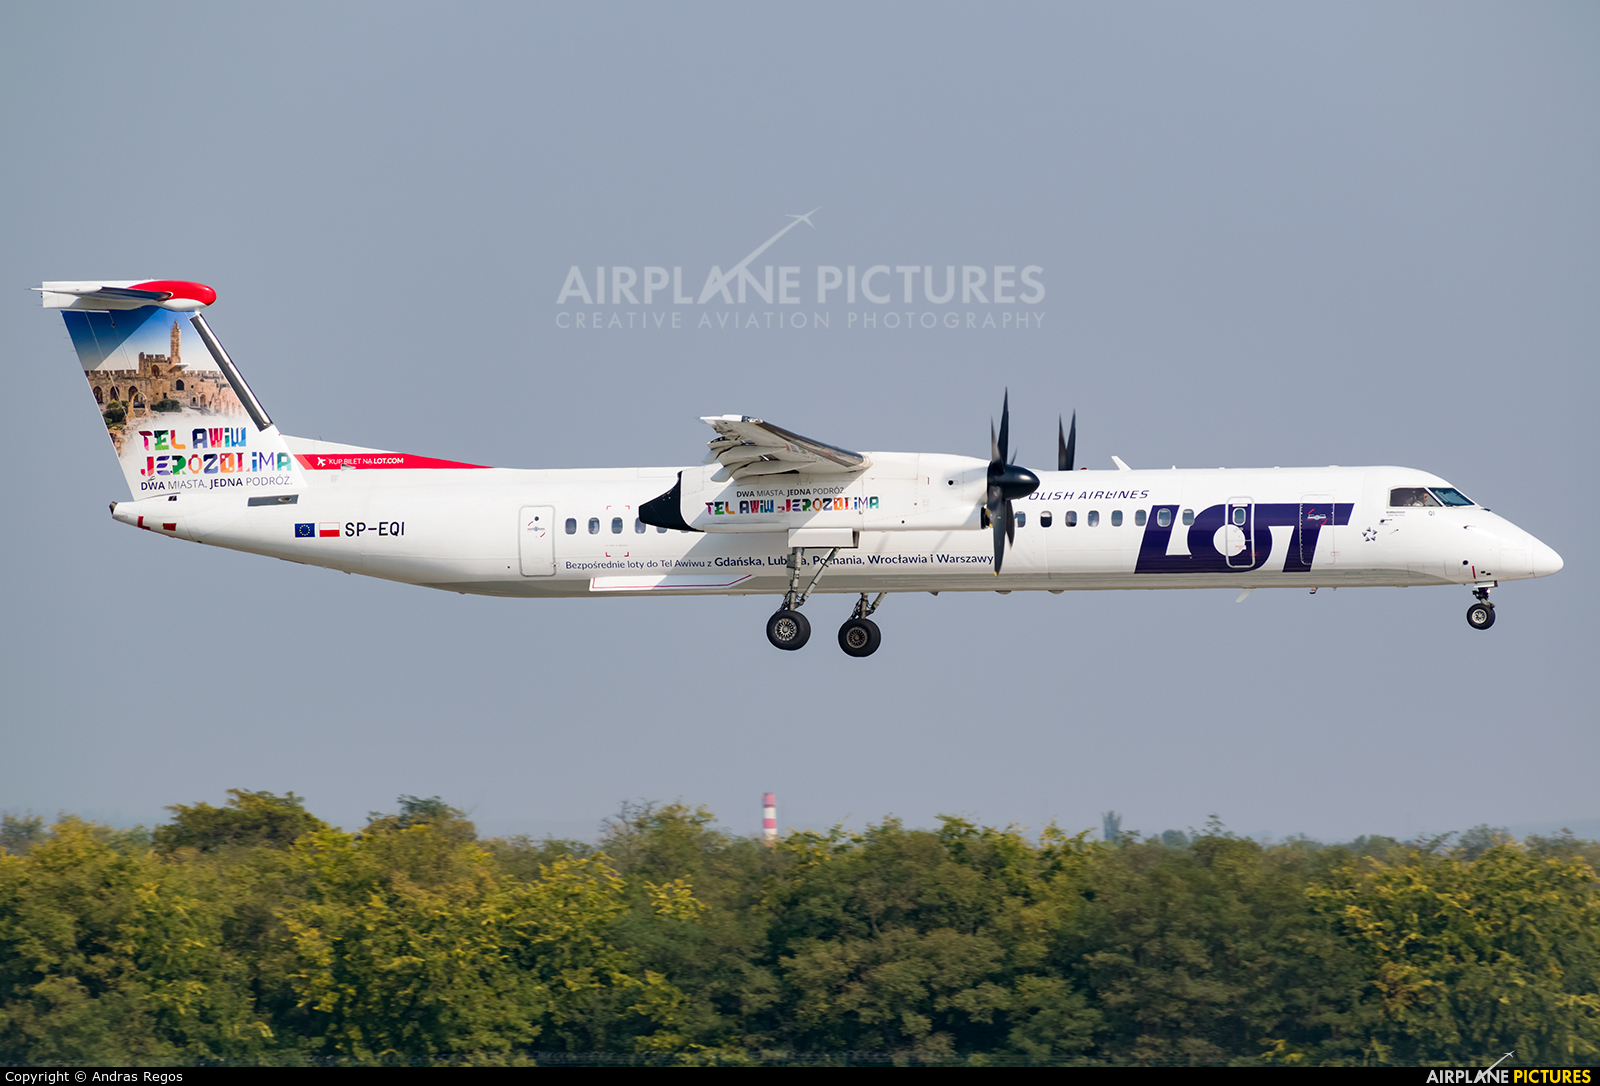 LOT - Polish Airlines SP-EQI aircraft at Budapest Ferenc Liszt International Airport